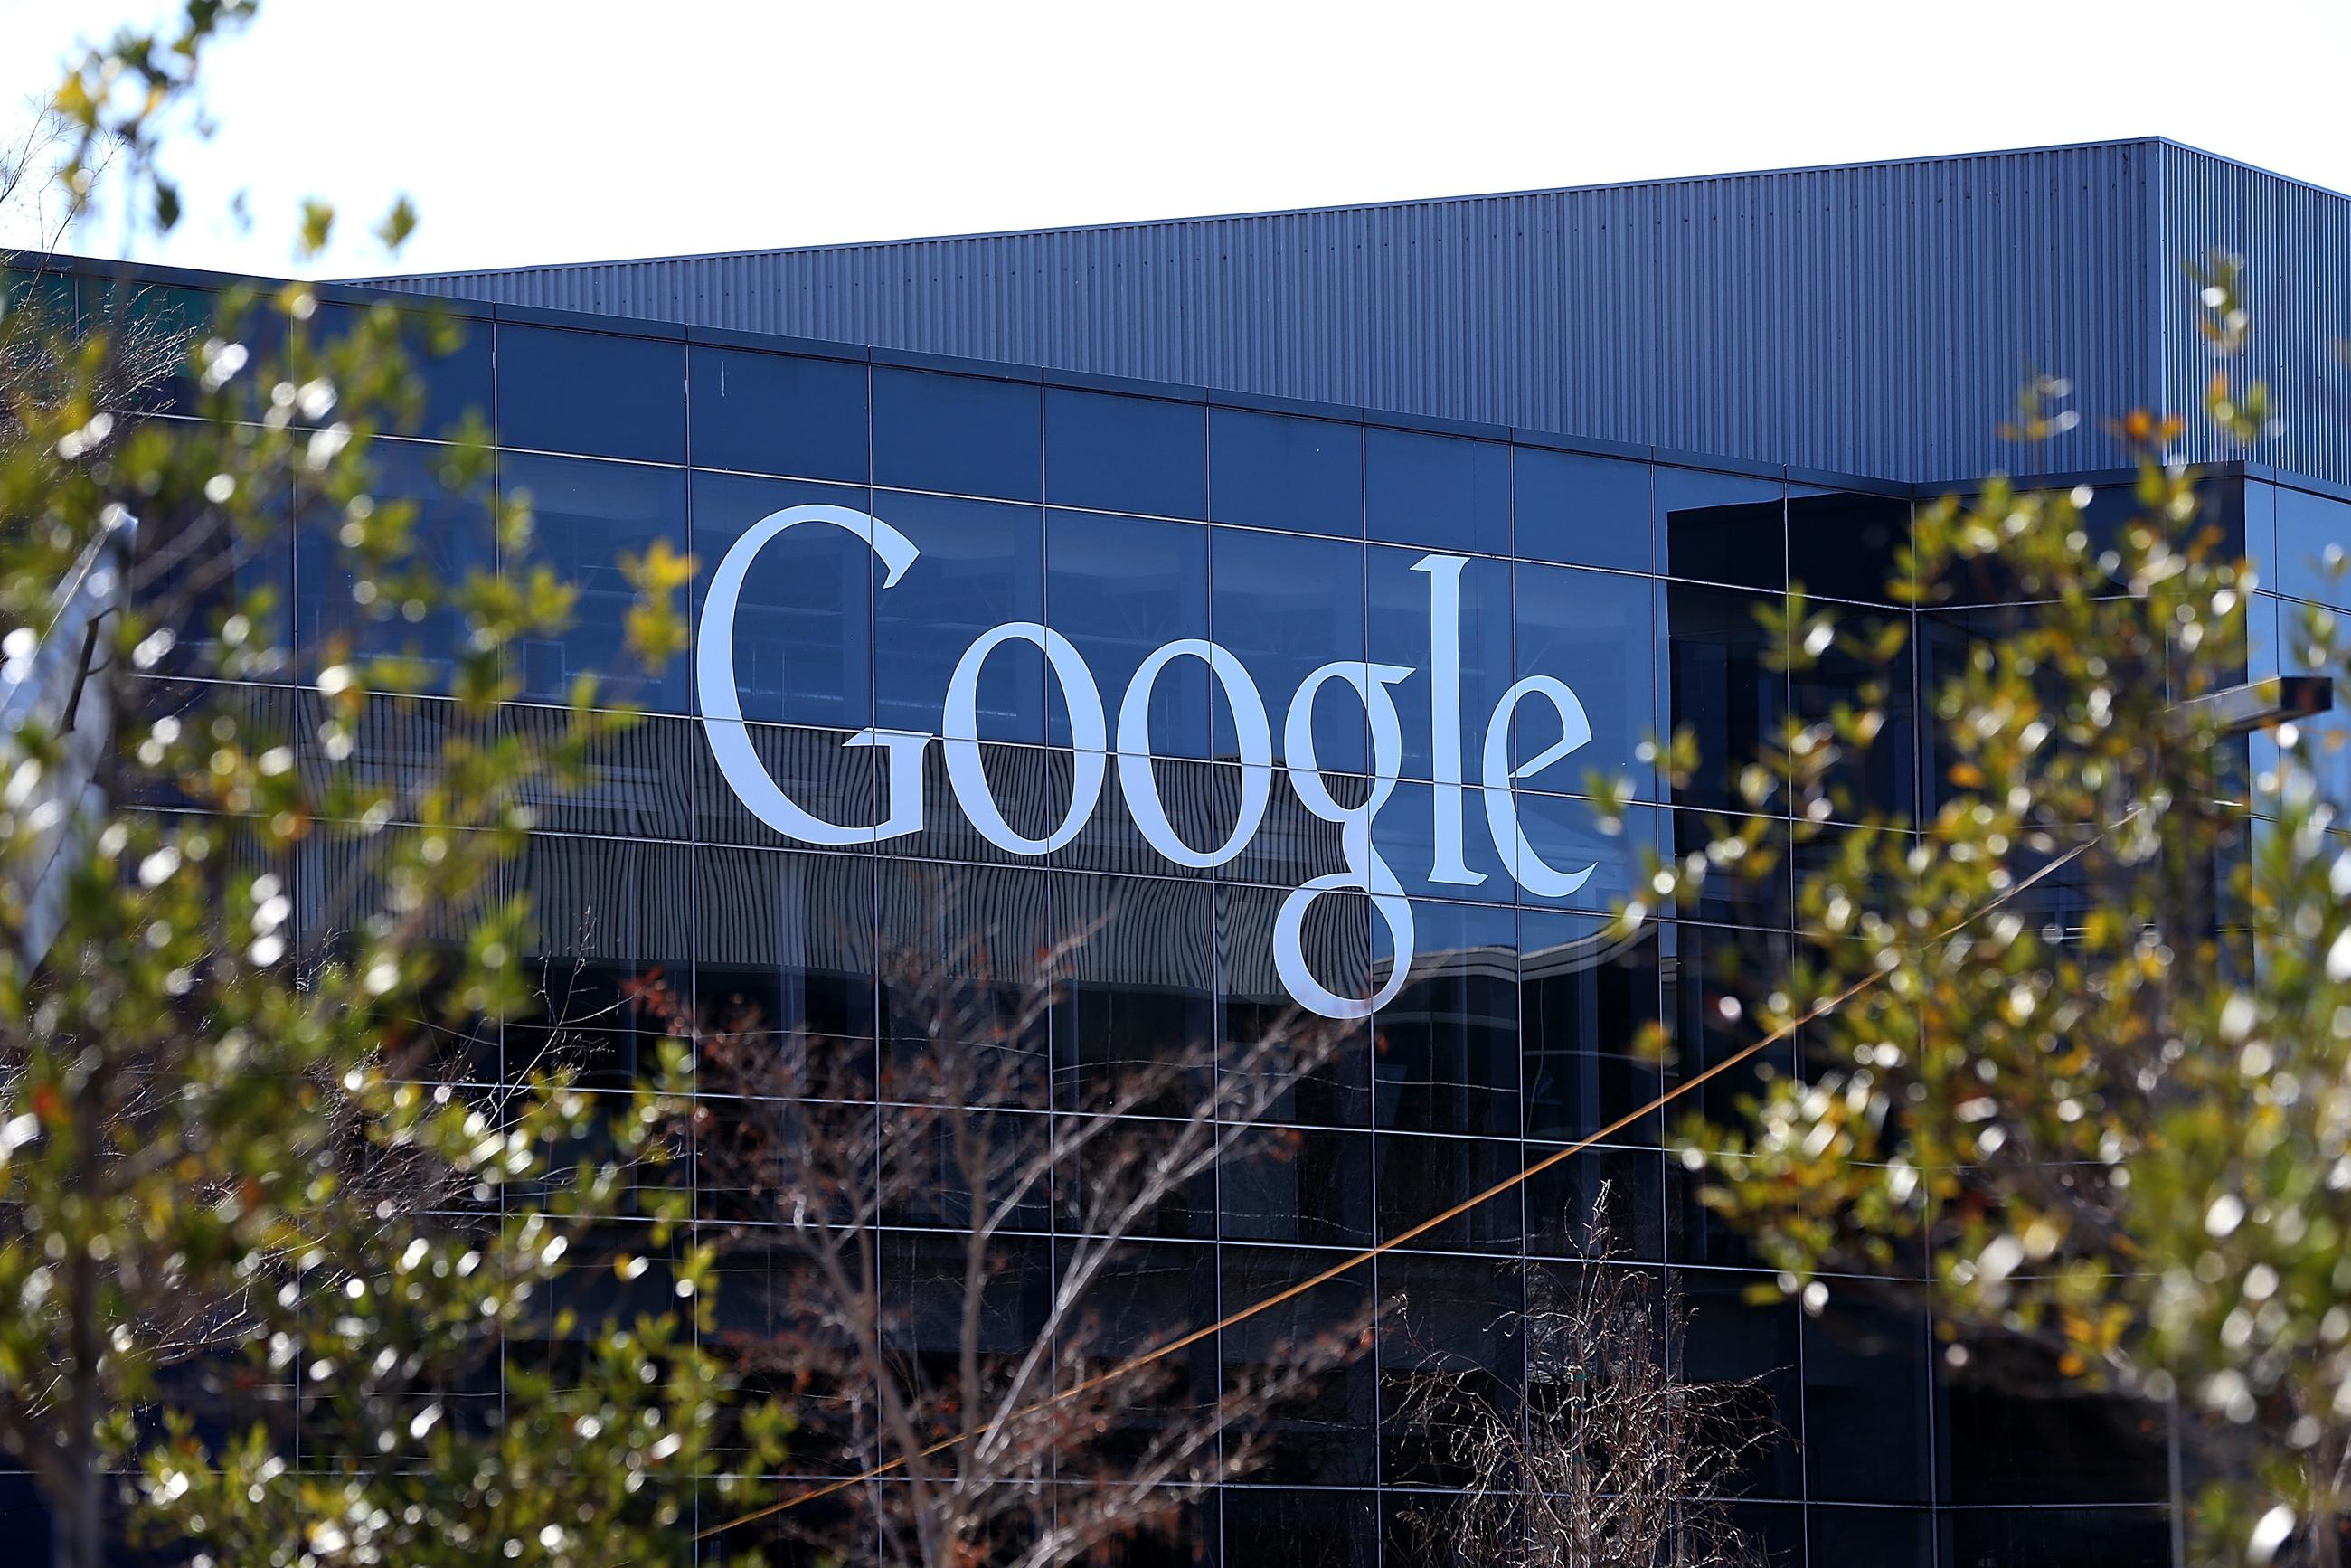 Cable Companies: Google Threatens Net Neutrality, Not Us